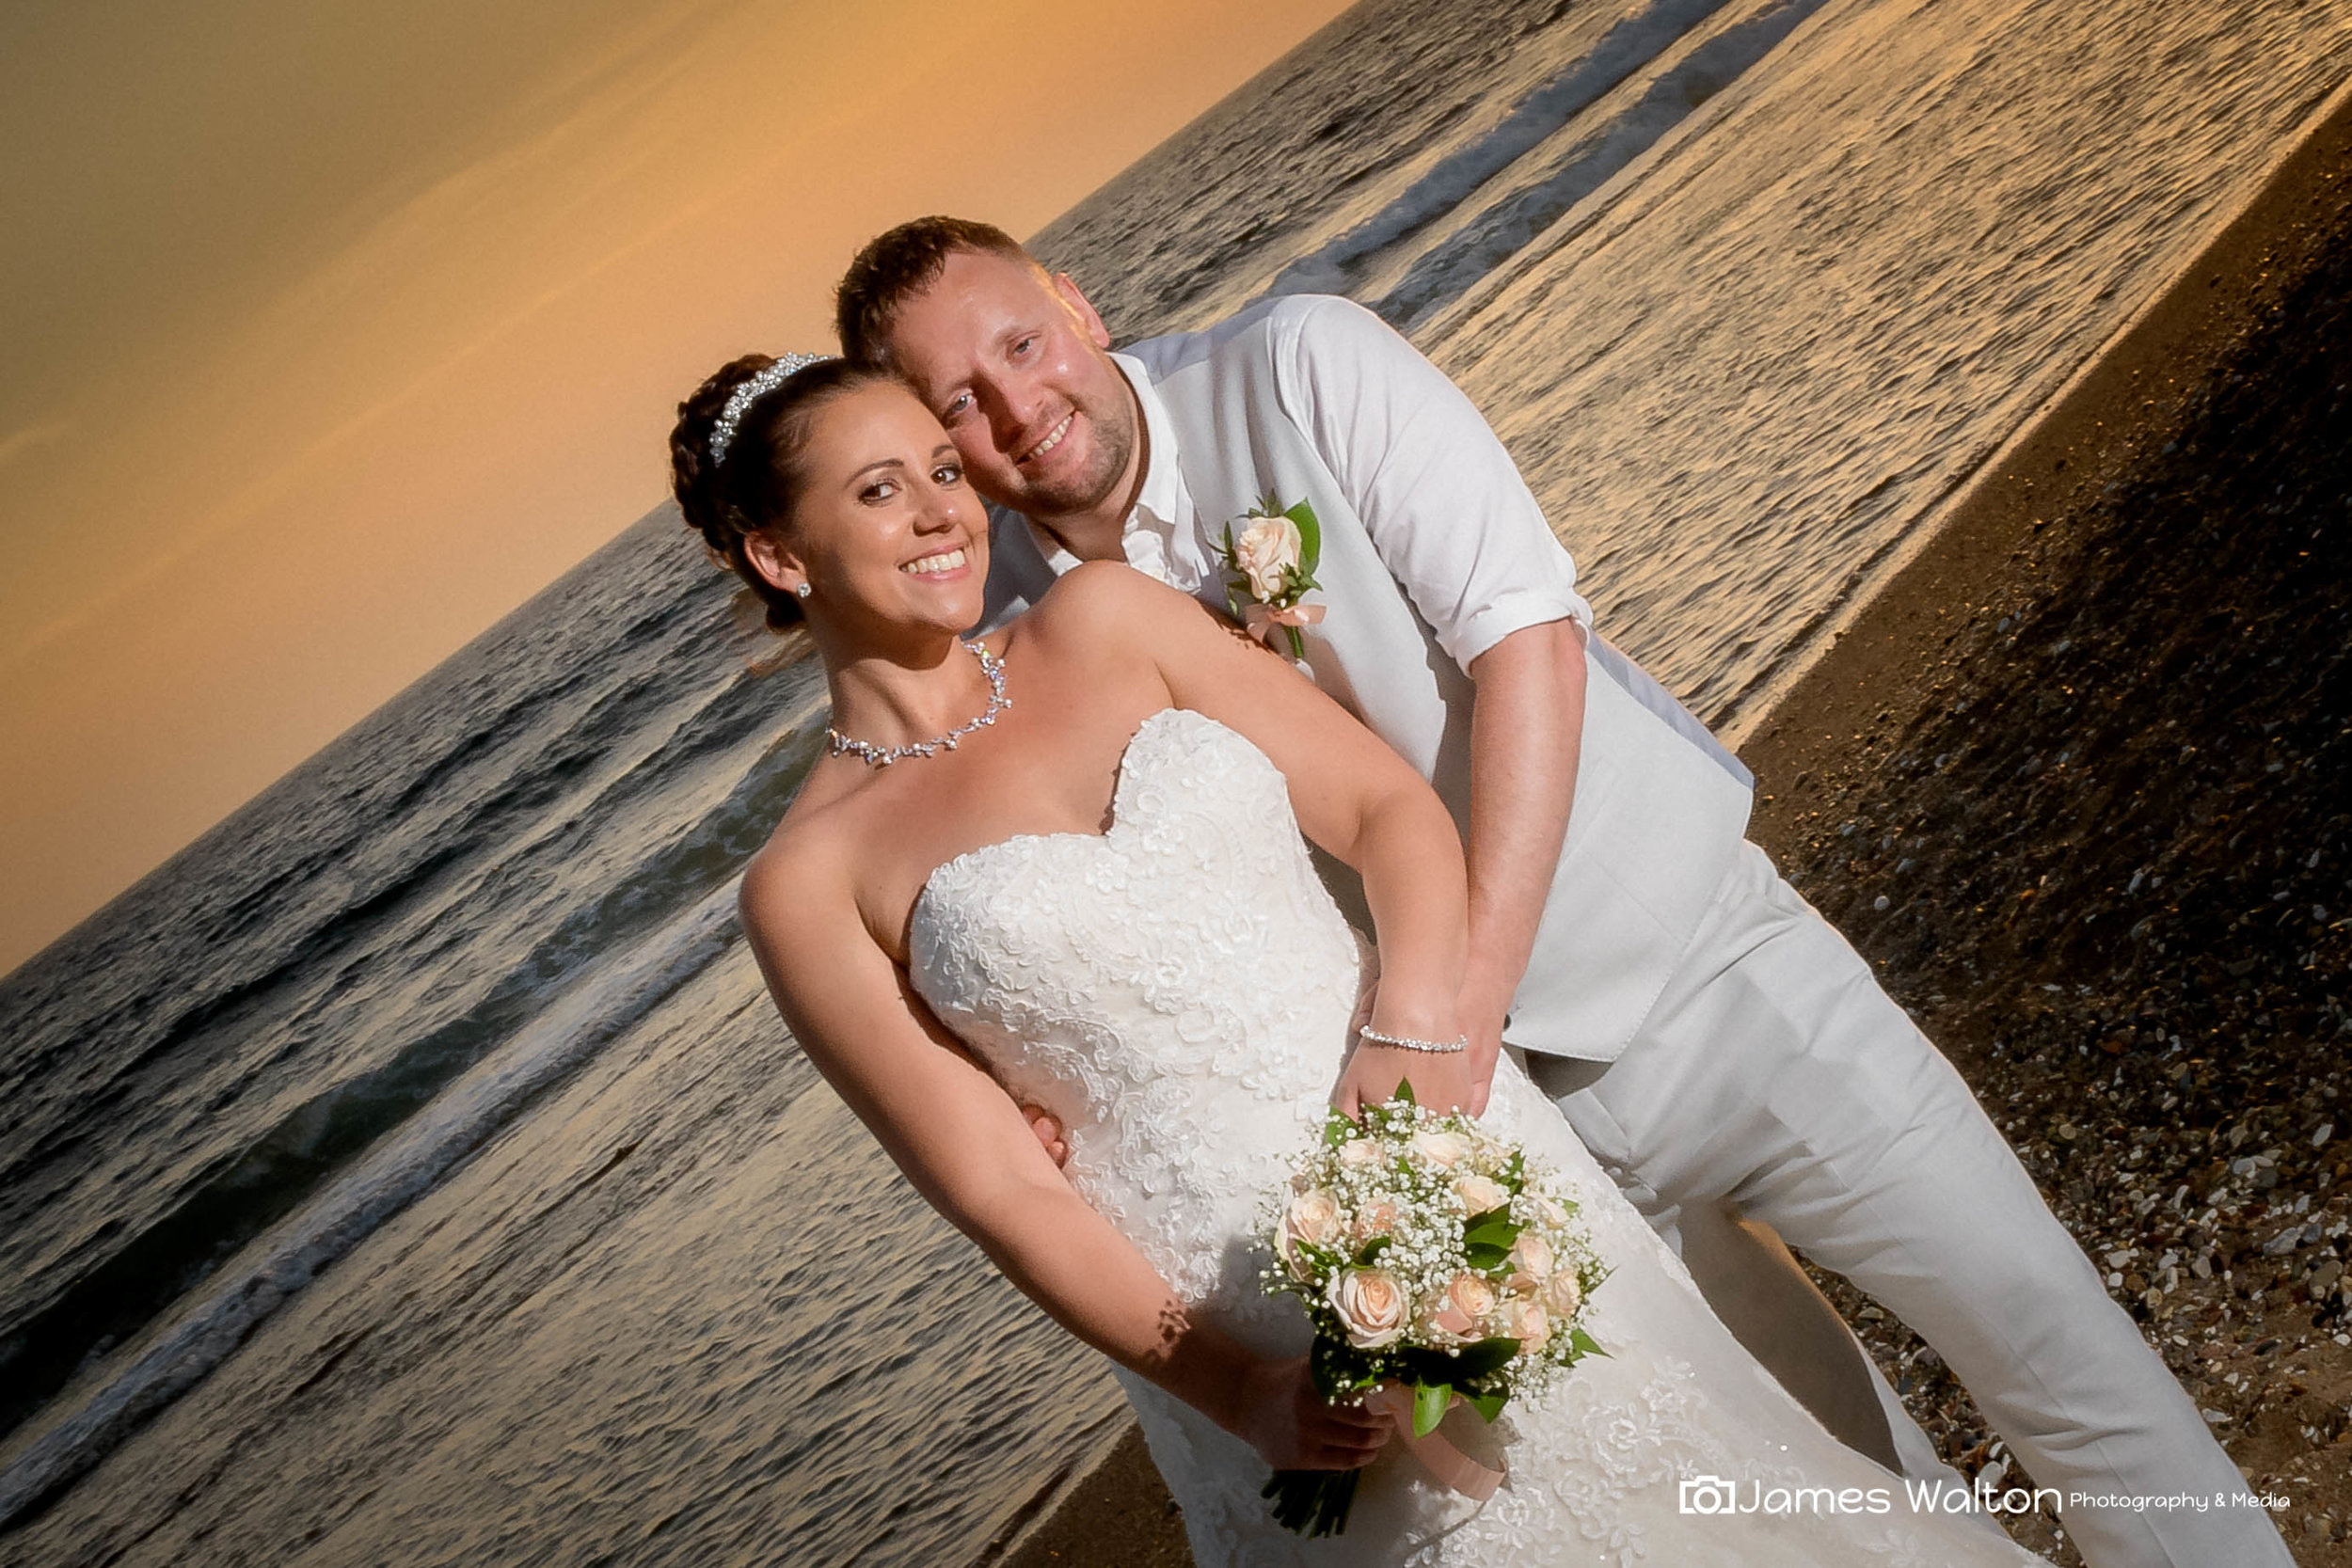 Highly recommend James we are so pleased with our daughters wedding photos thank you xx - Collette BlaineyMother of Francesca Bray